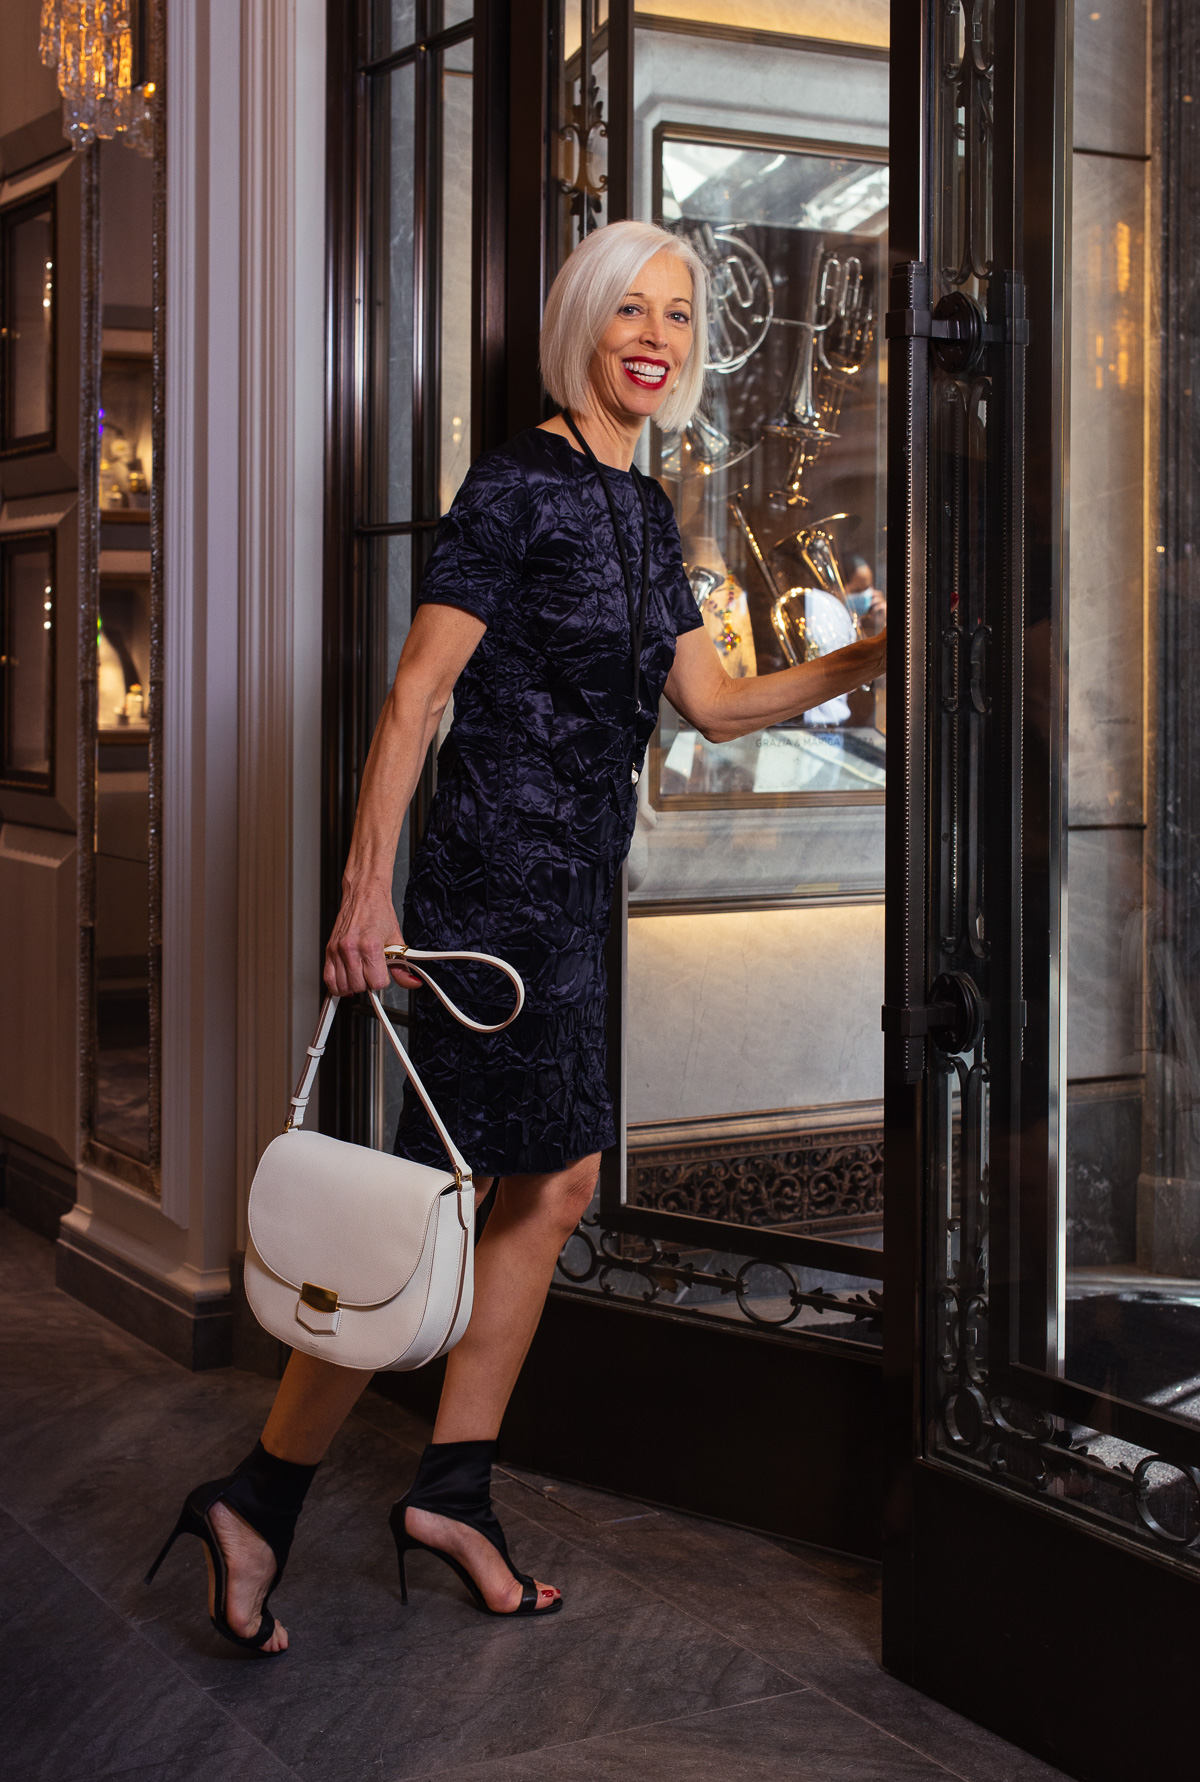 celine clutch pouch price - The Many Bags of Bergdorf Goodman - PurseBlog